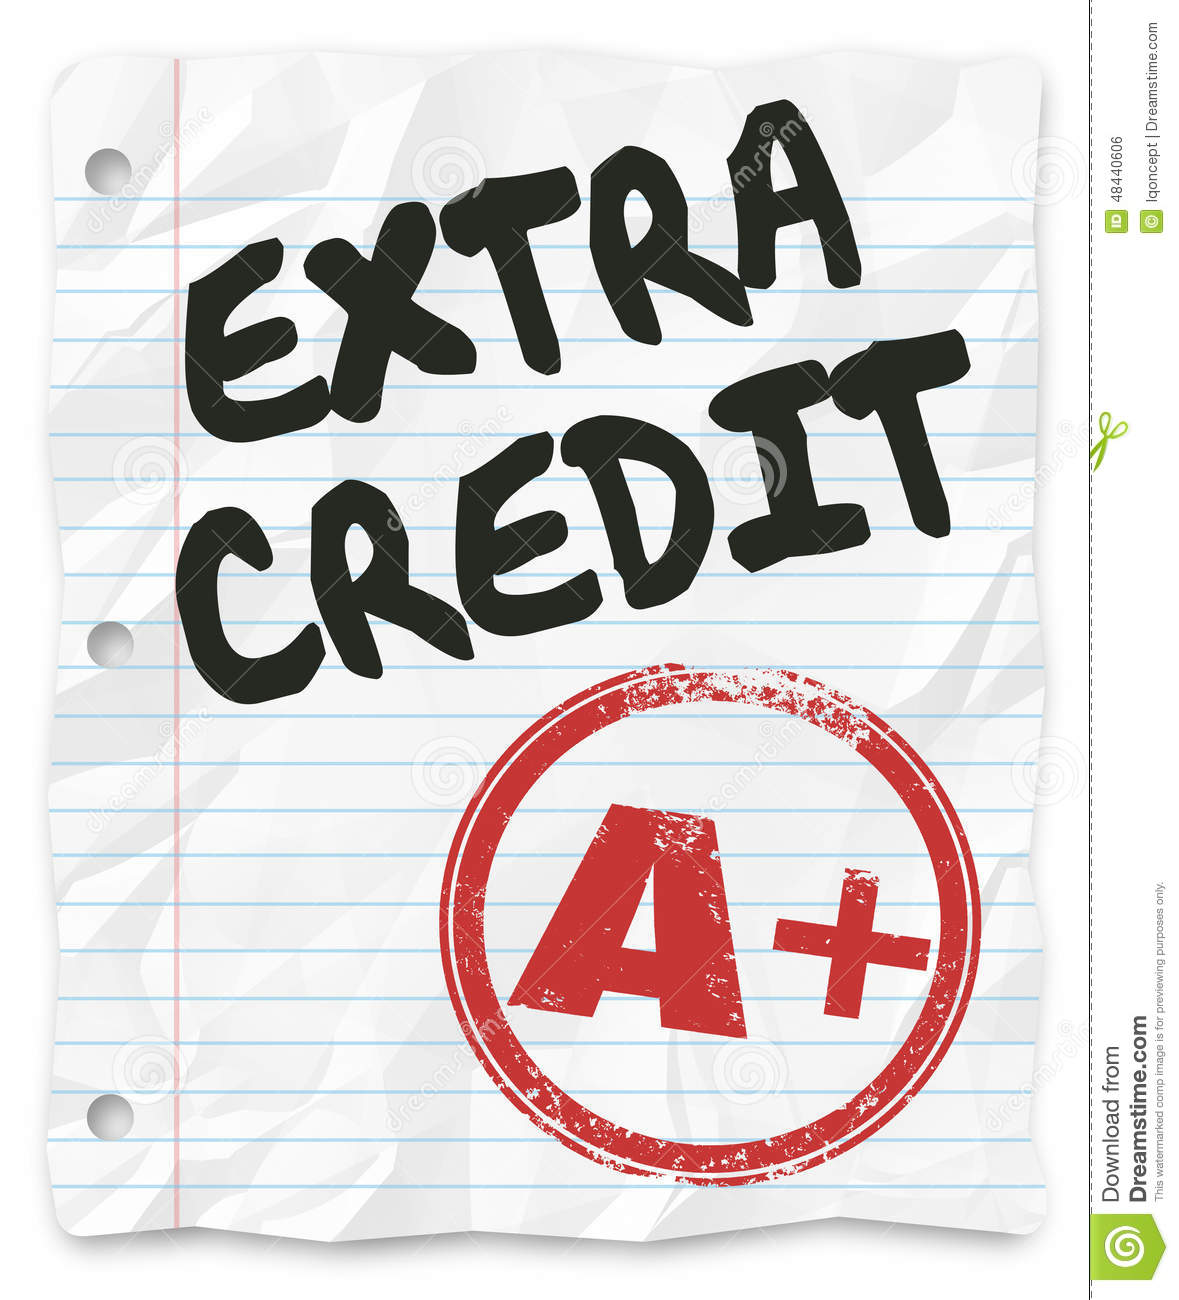 extra credit added points results graded school paper homework stock